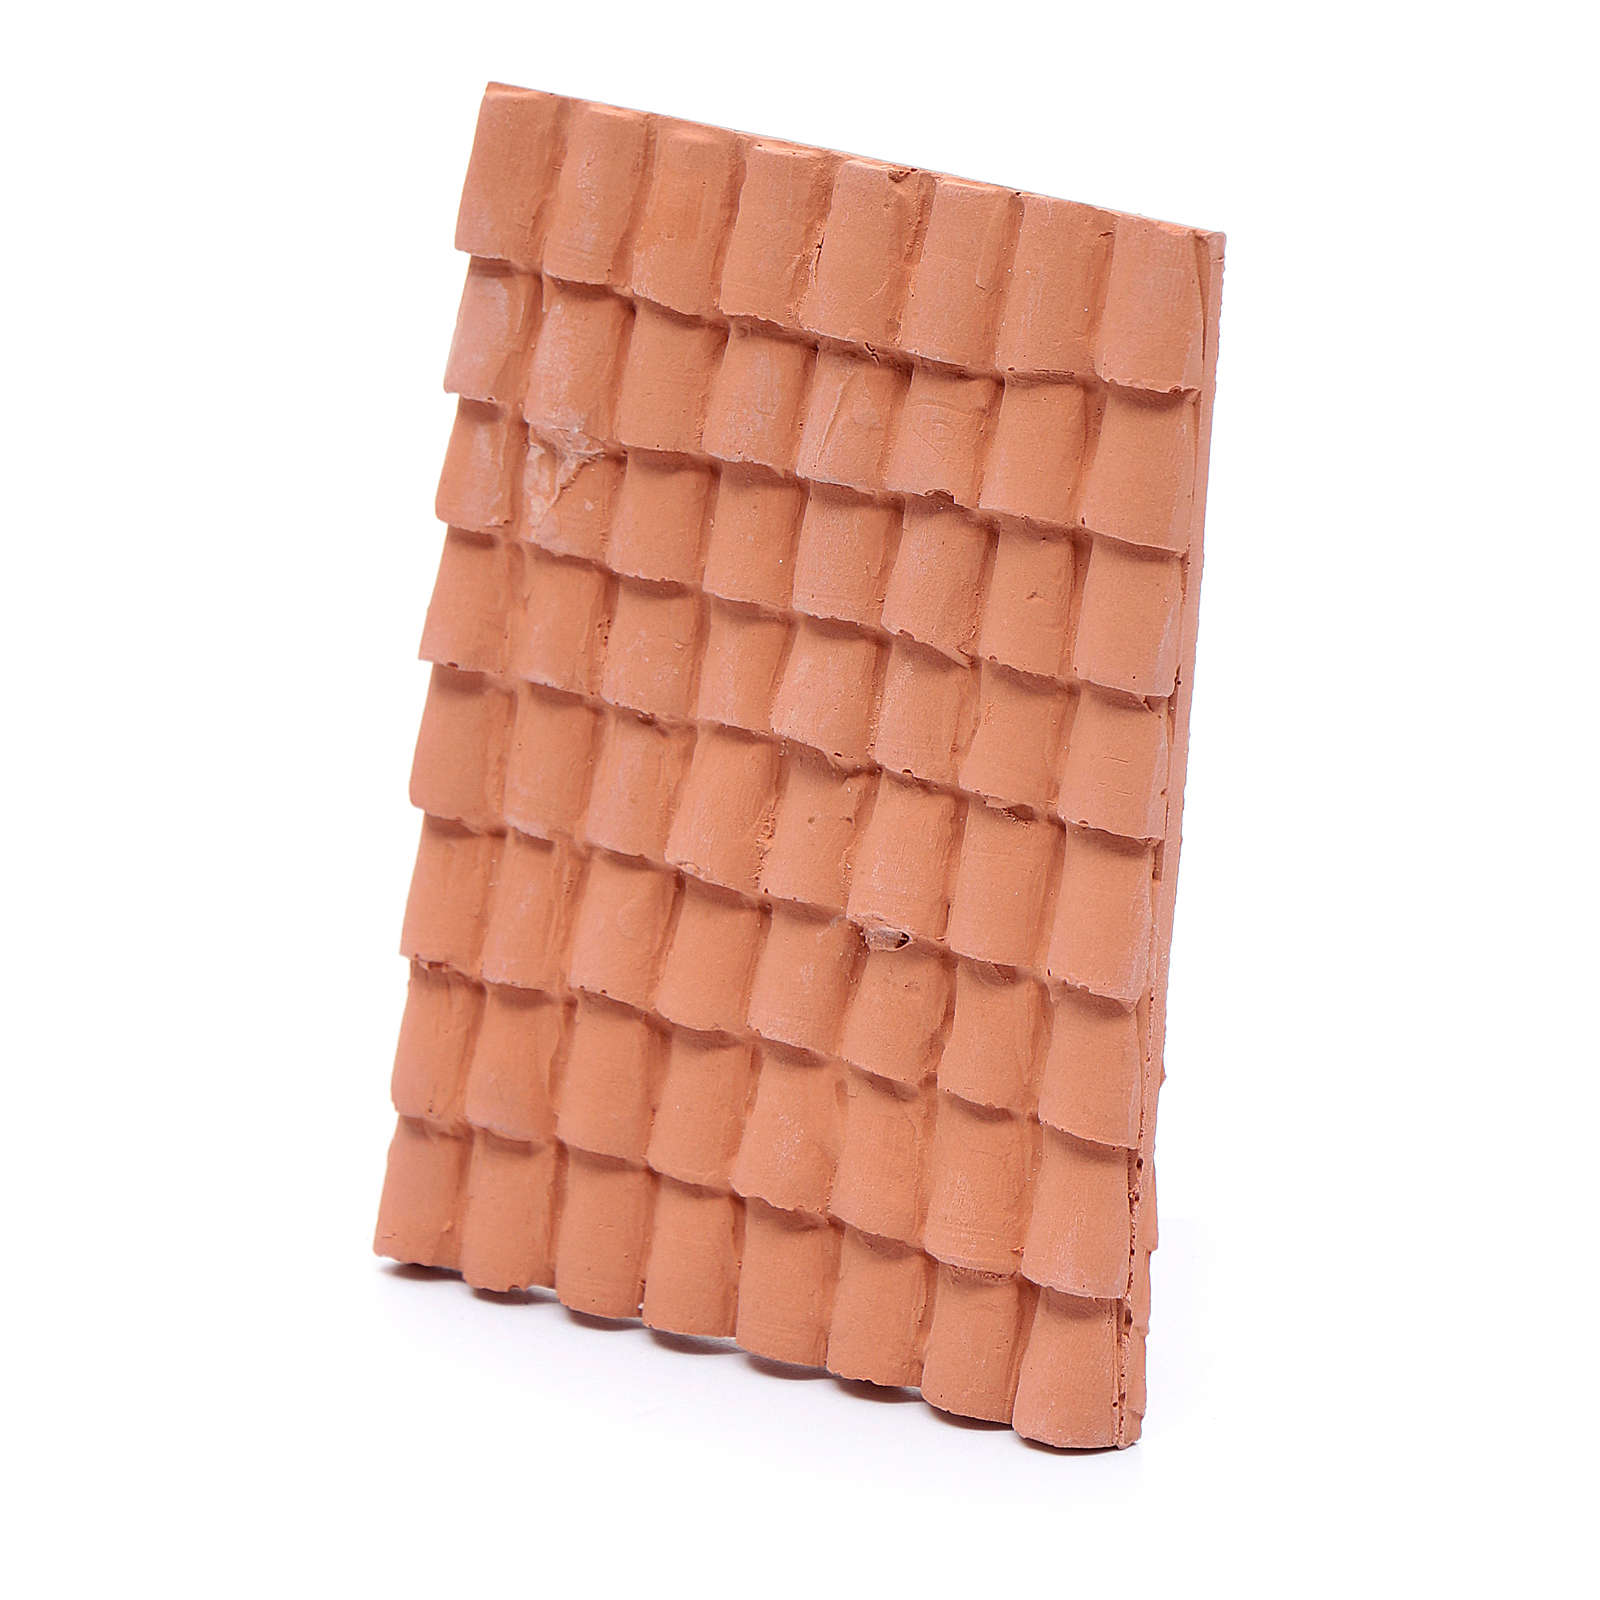 nativity scene resin roof with terracotta decorated shingles 10x5 cm 4